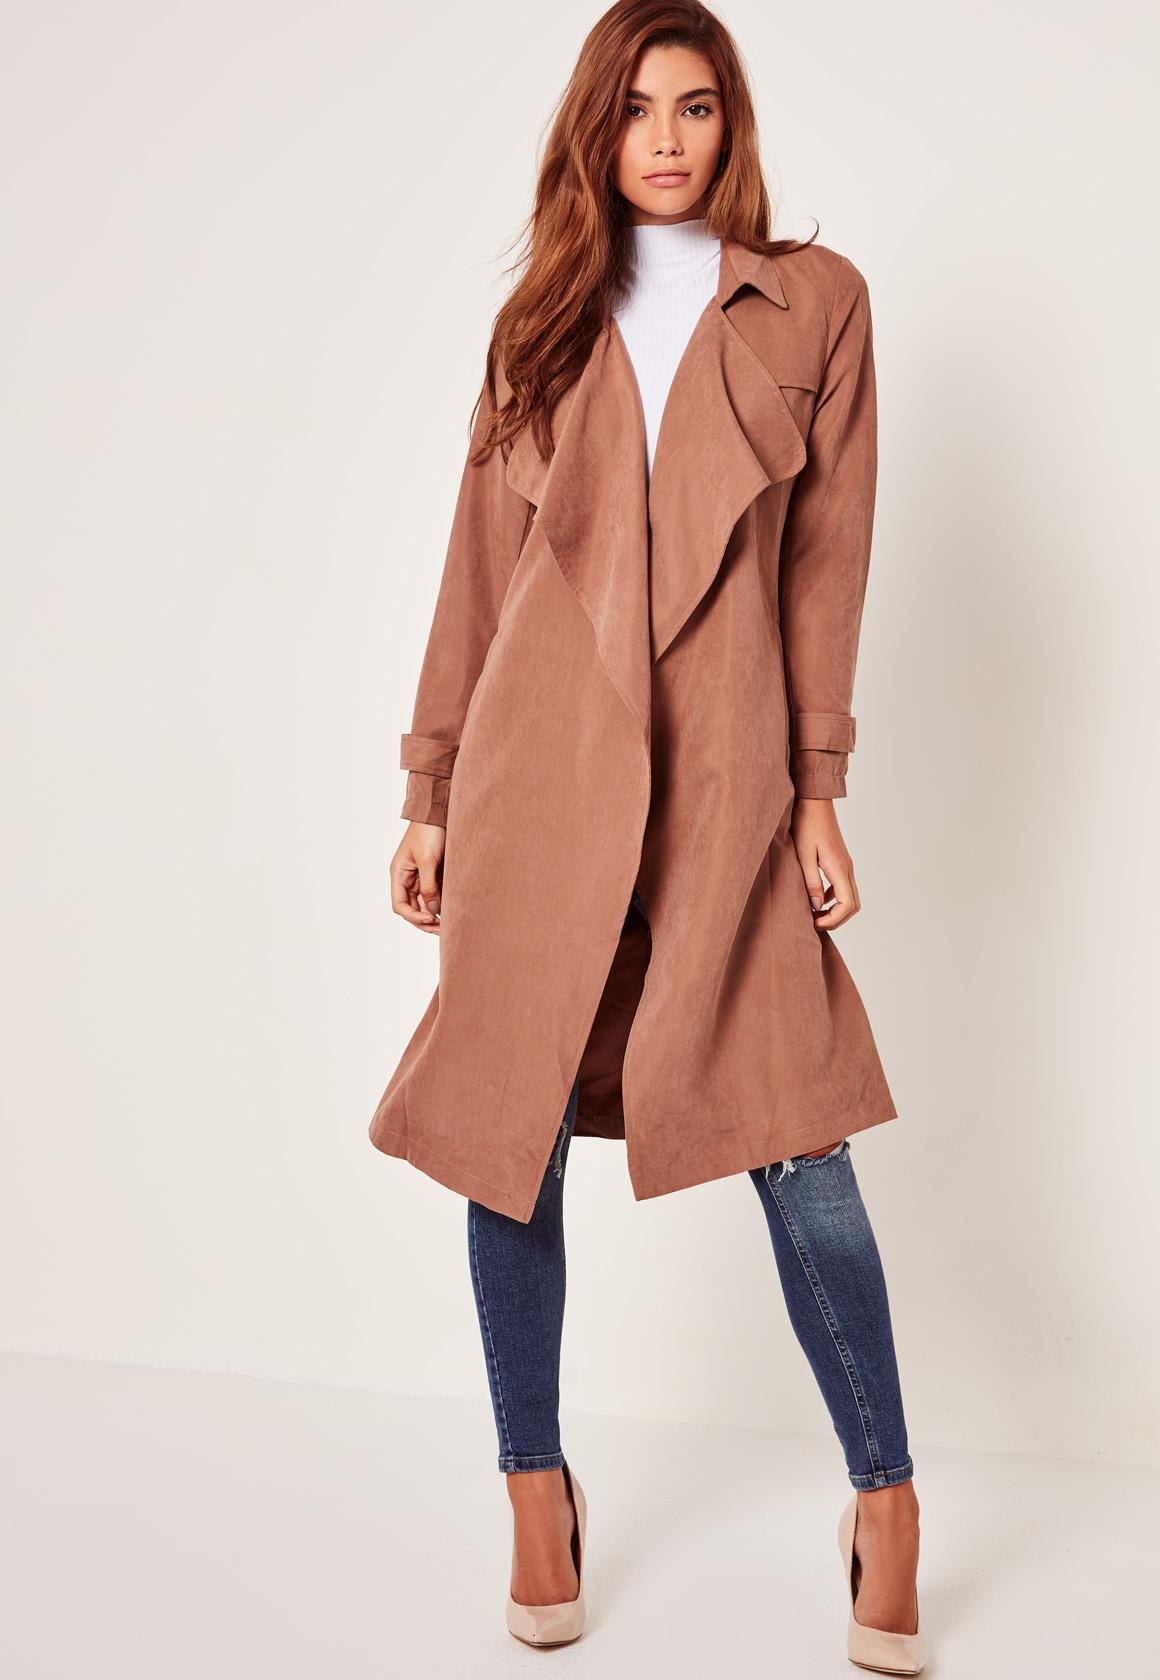 fb33ed20b7fa1 Lyst - Missguided Nude Lightweight Waterfall Duster Coat in Blue